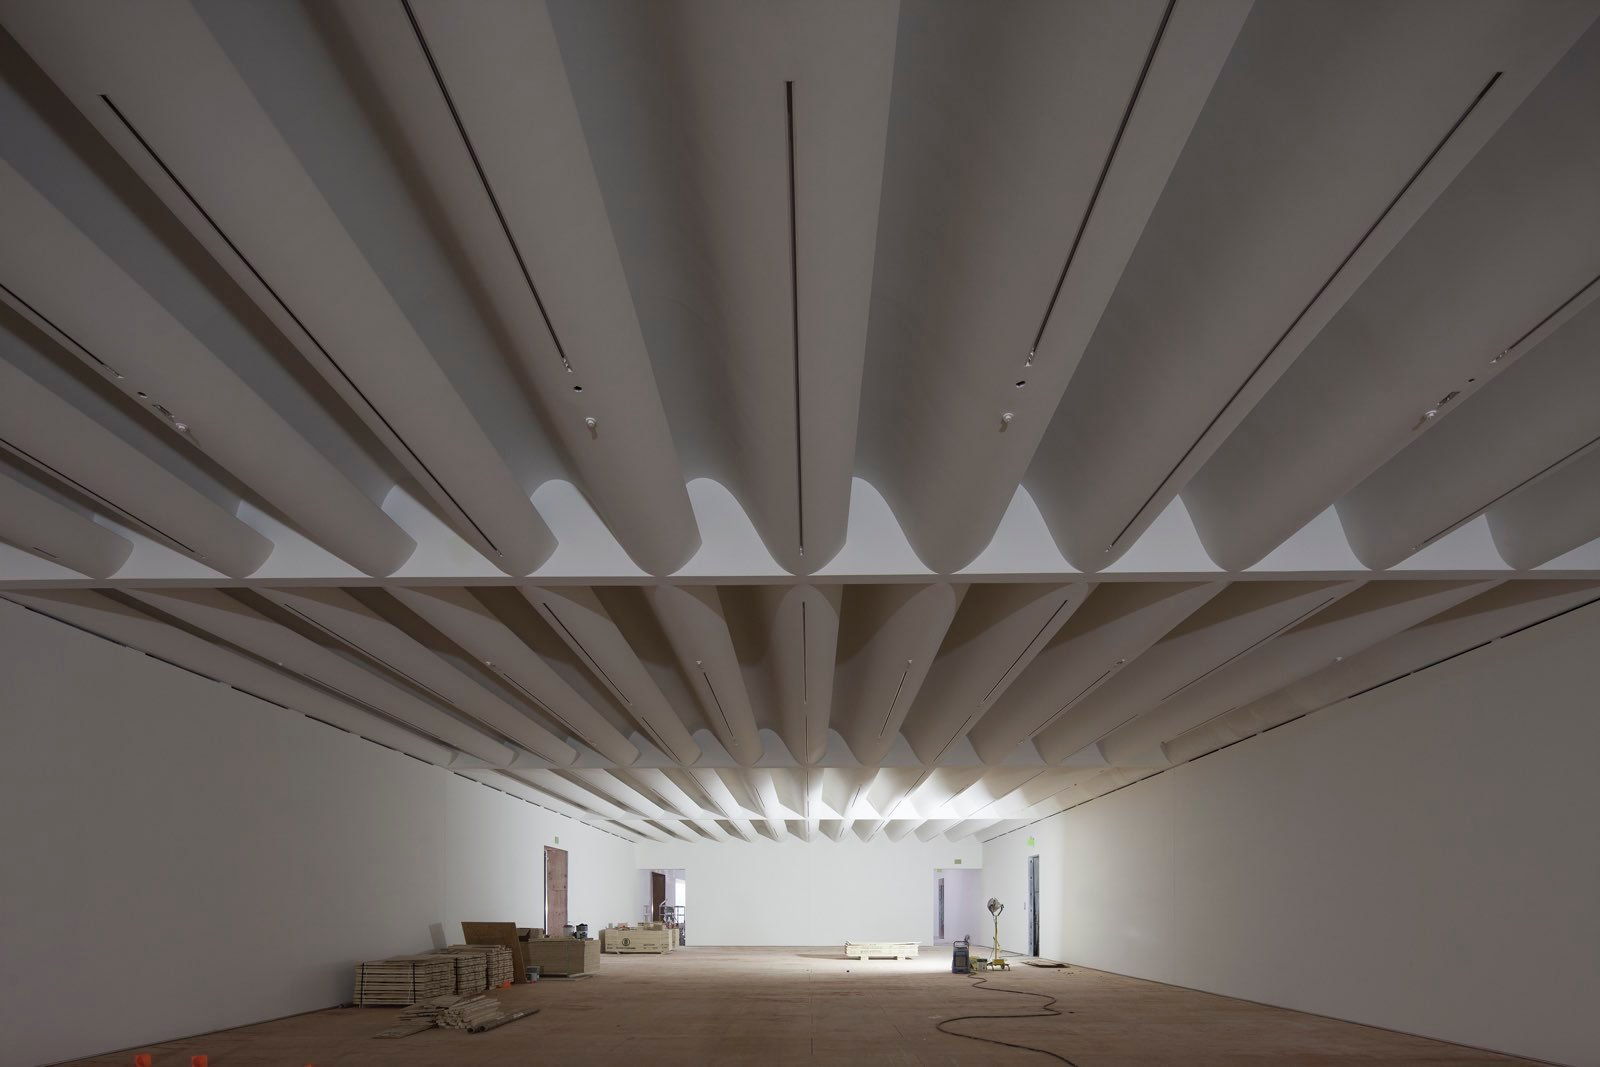 A cavernous room with an undulating white ceiling